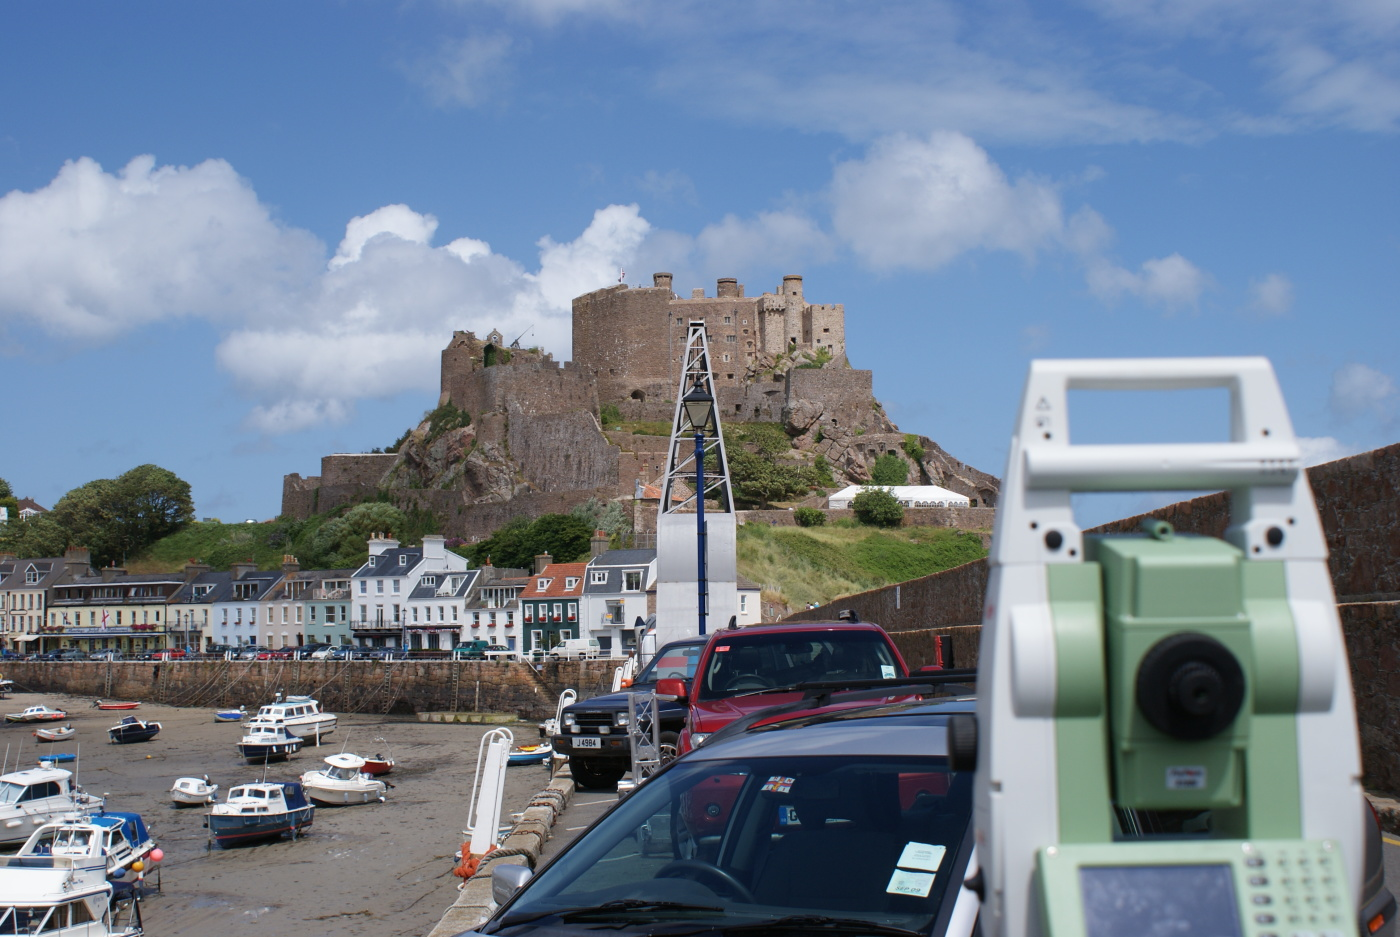 Jersey - 3D Laser Scanning and Control Survey